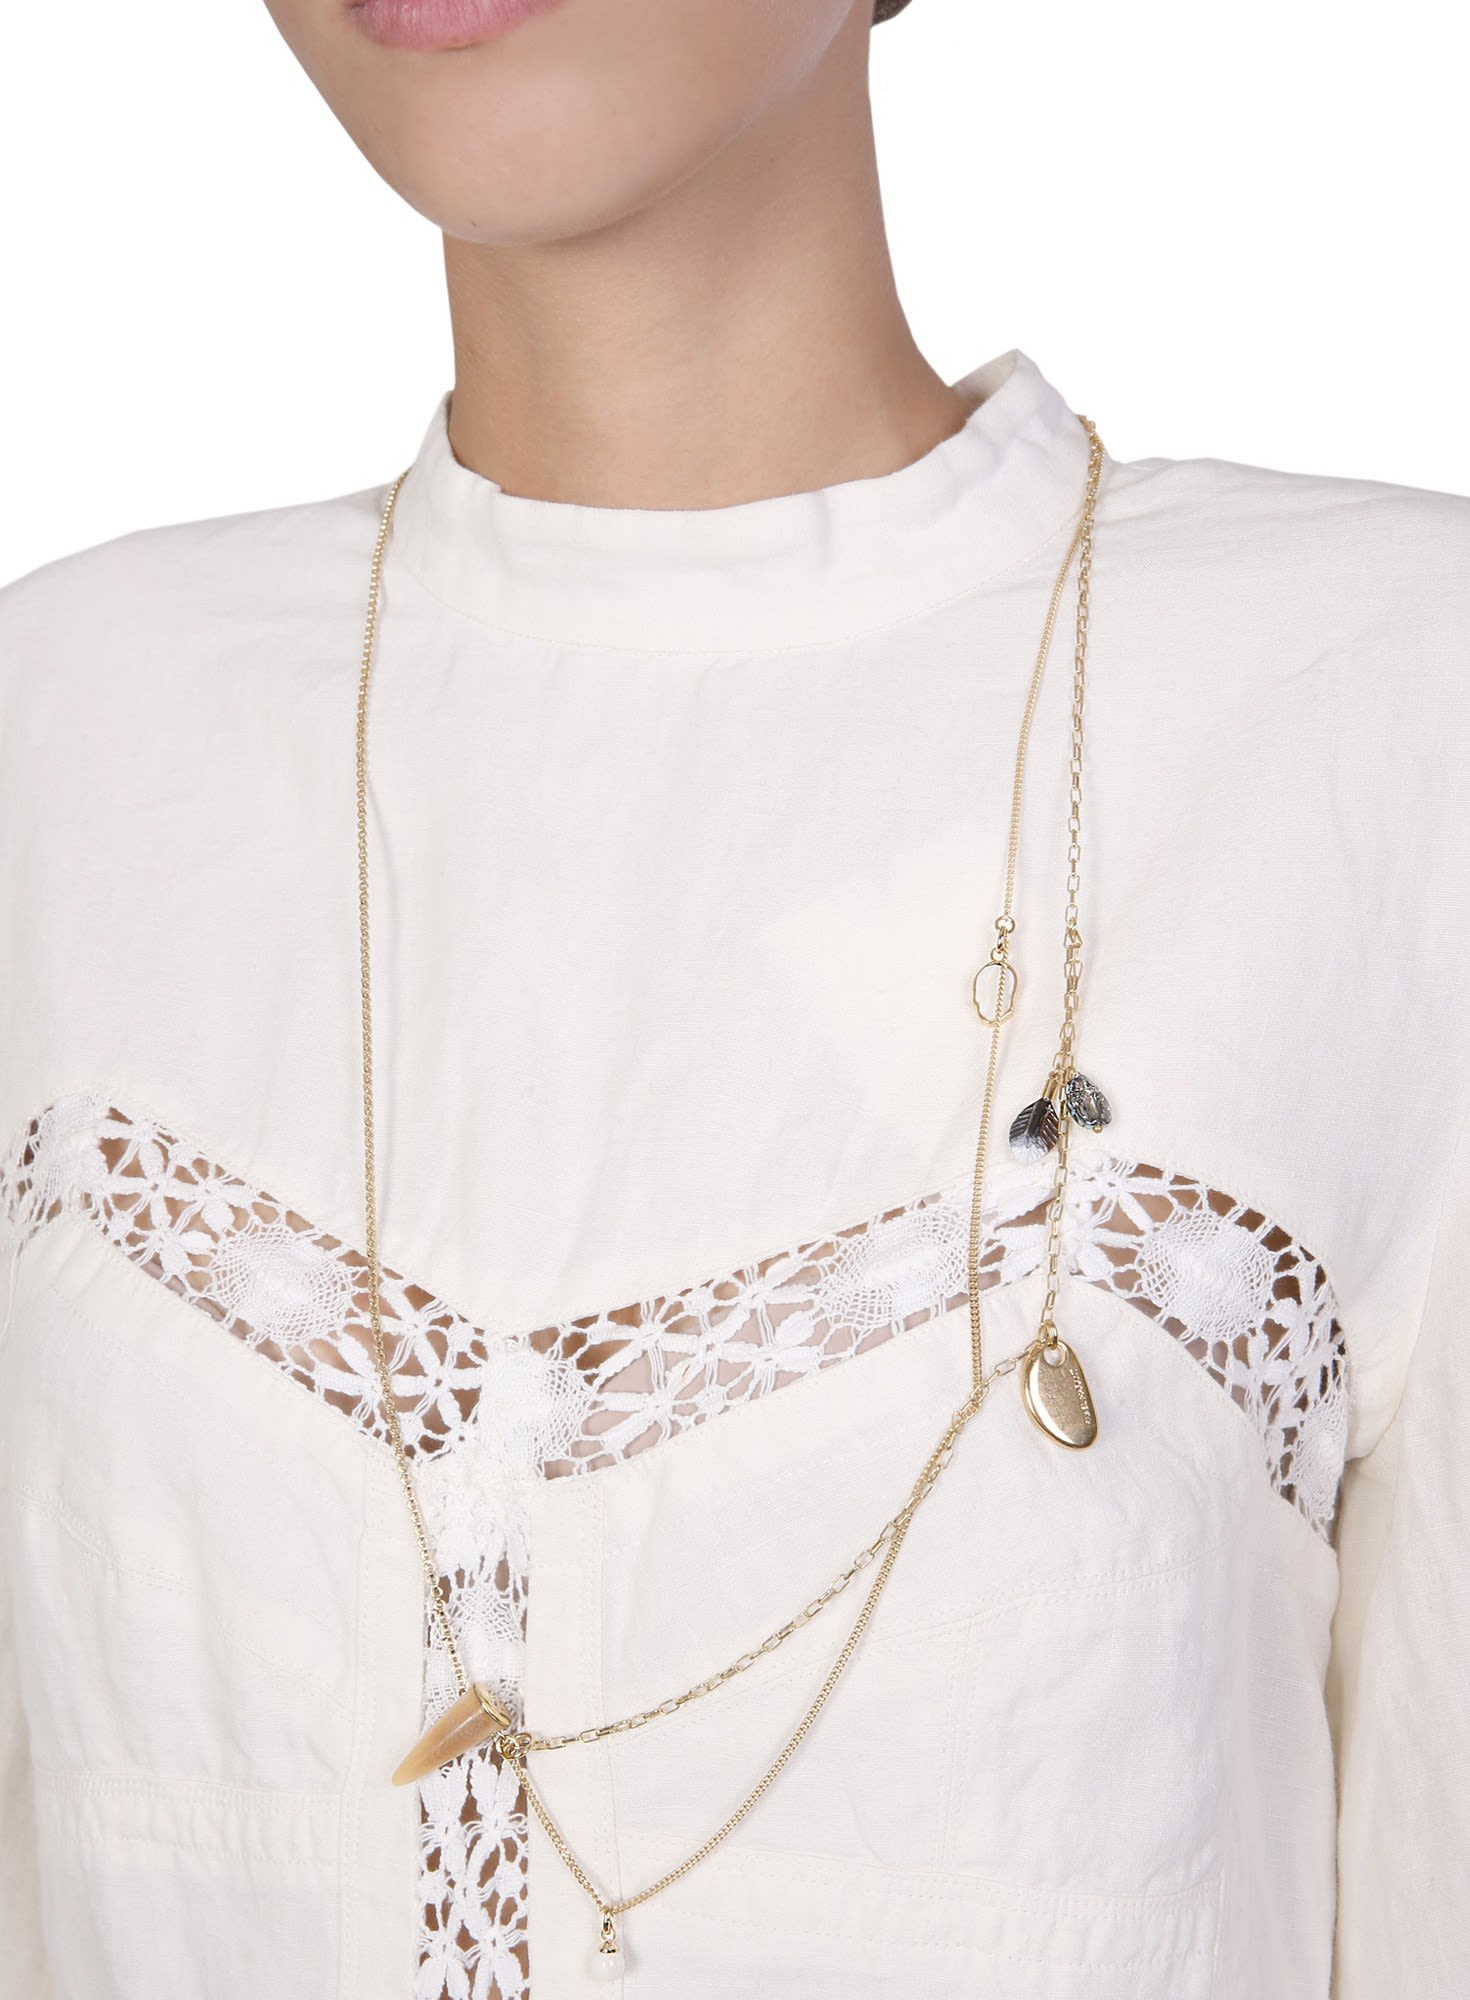 Isabel Marant Beetle Necklace